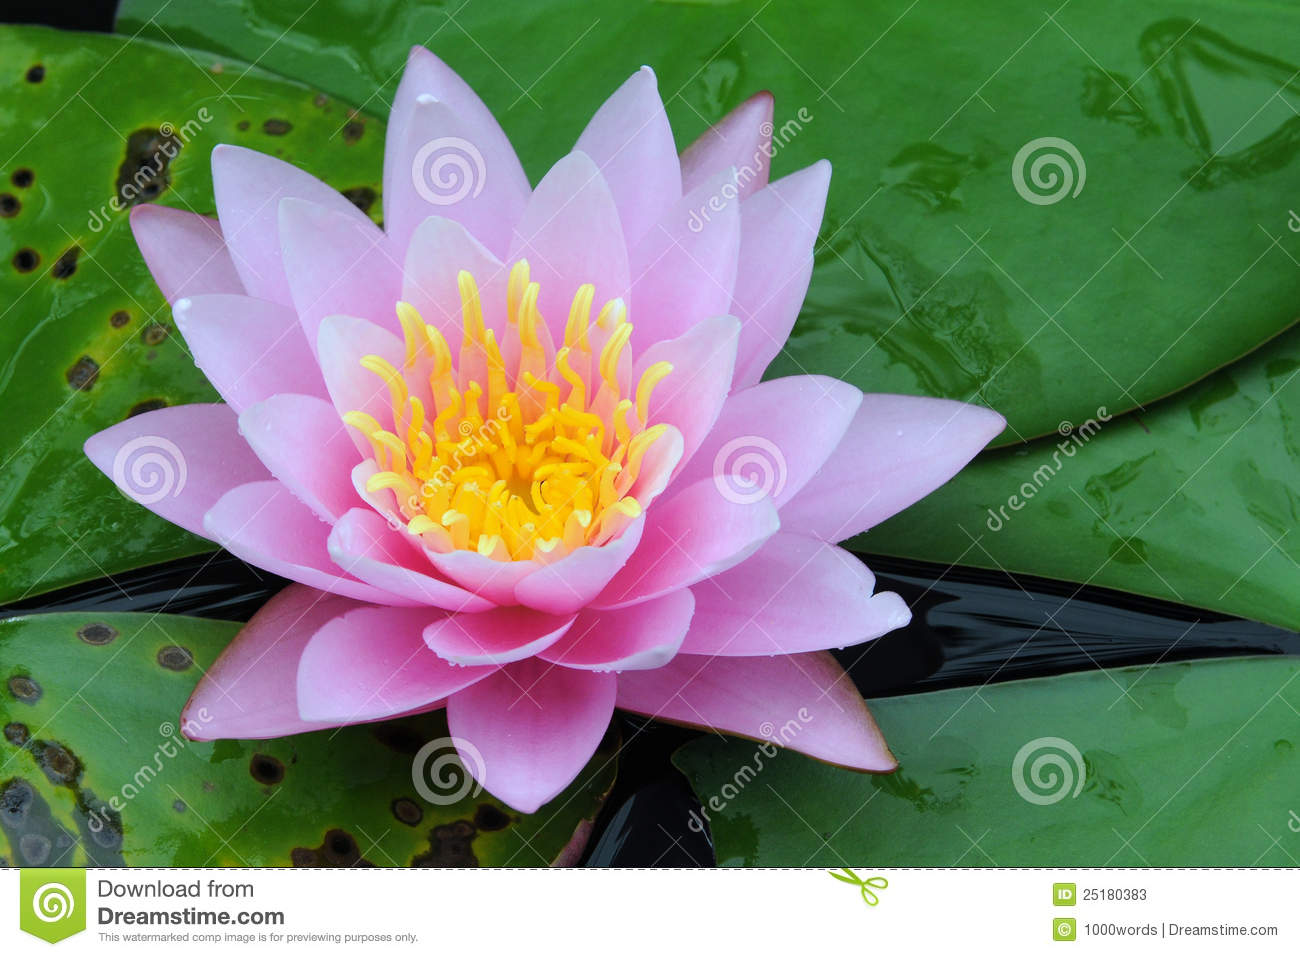 ... nucifera), commonly also referred to as Water Lily, in a Garden Pond